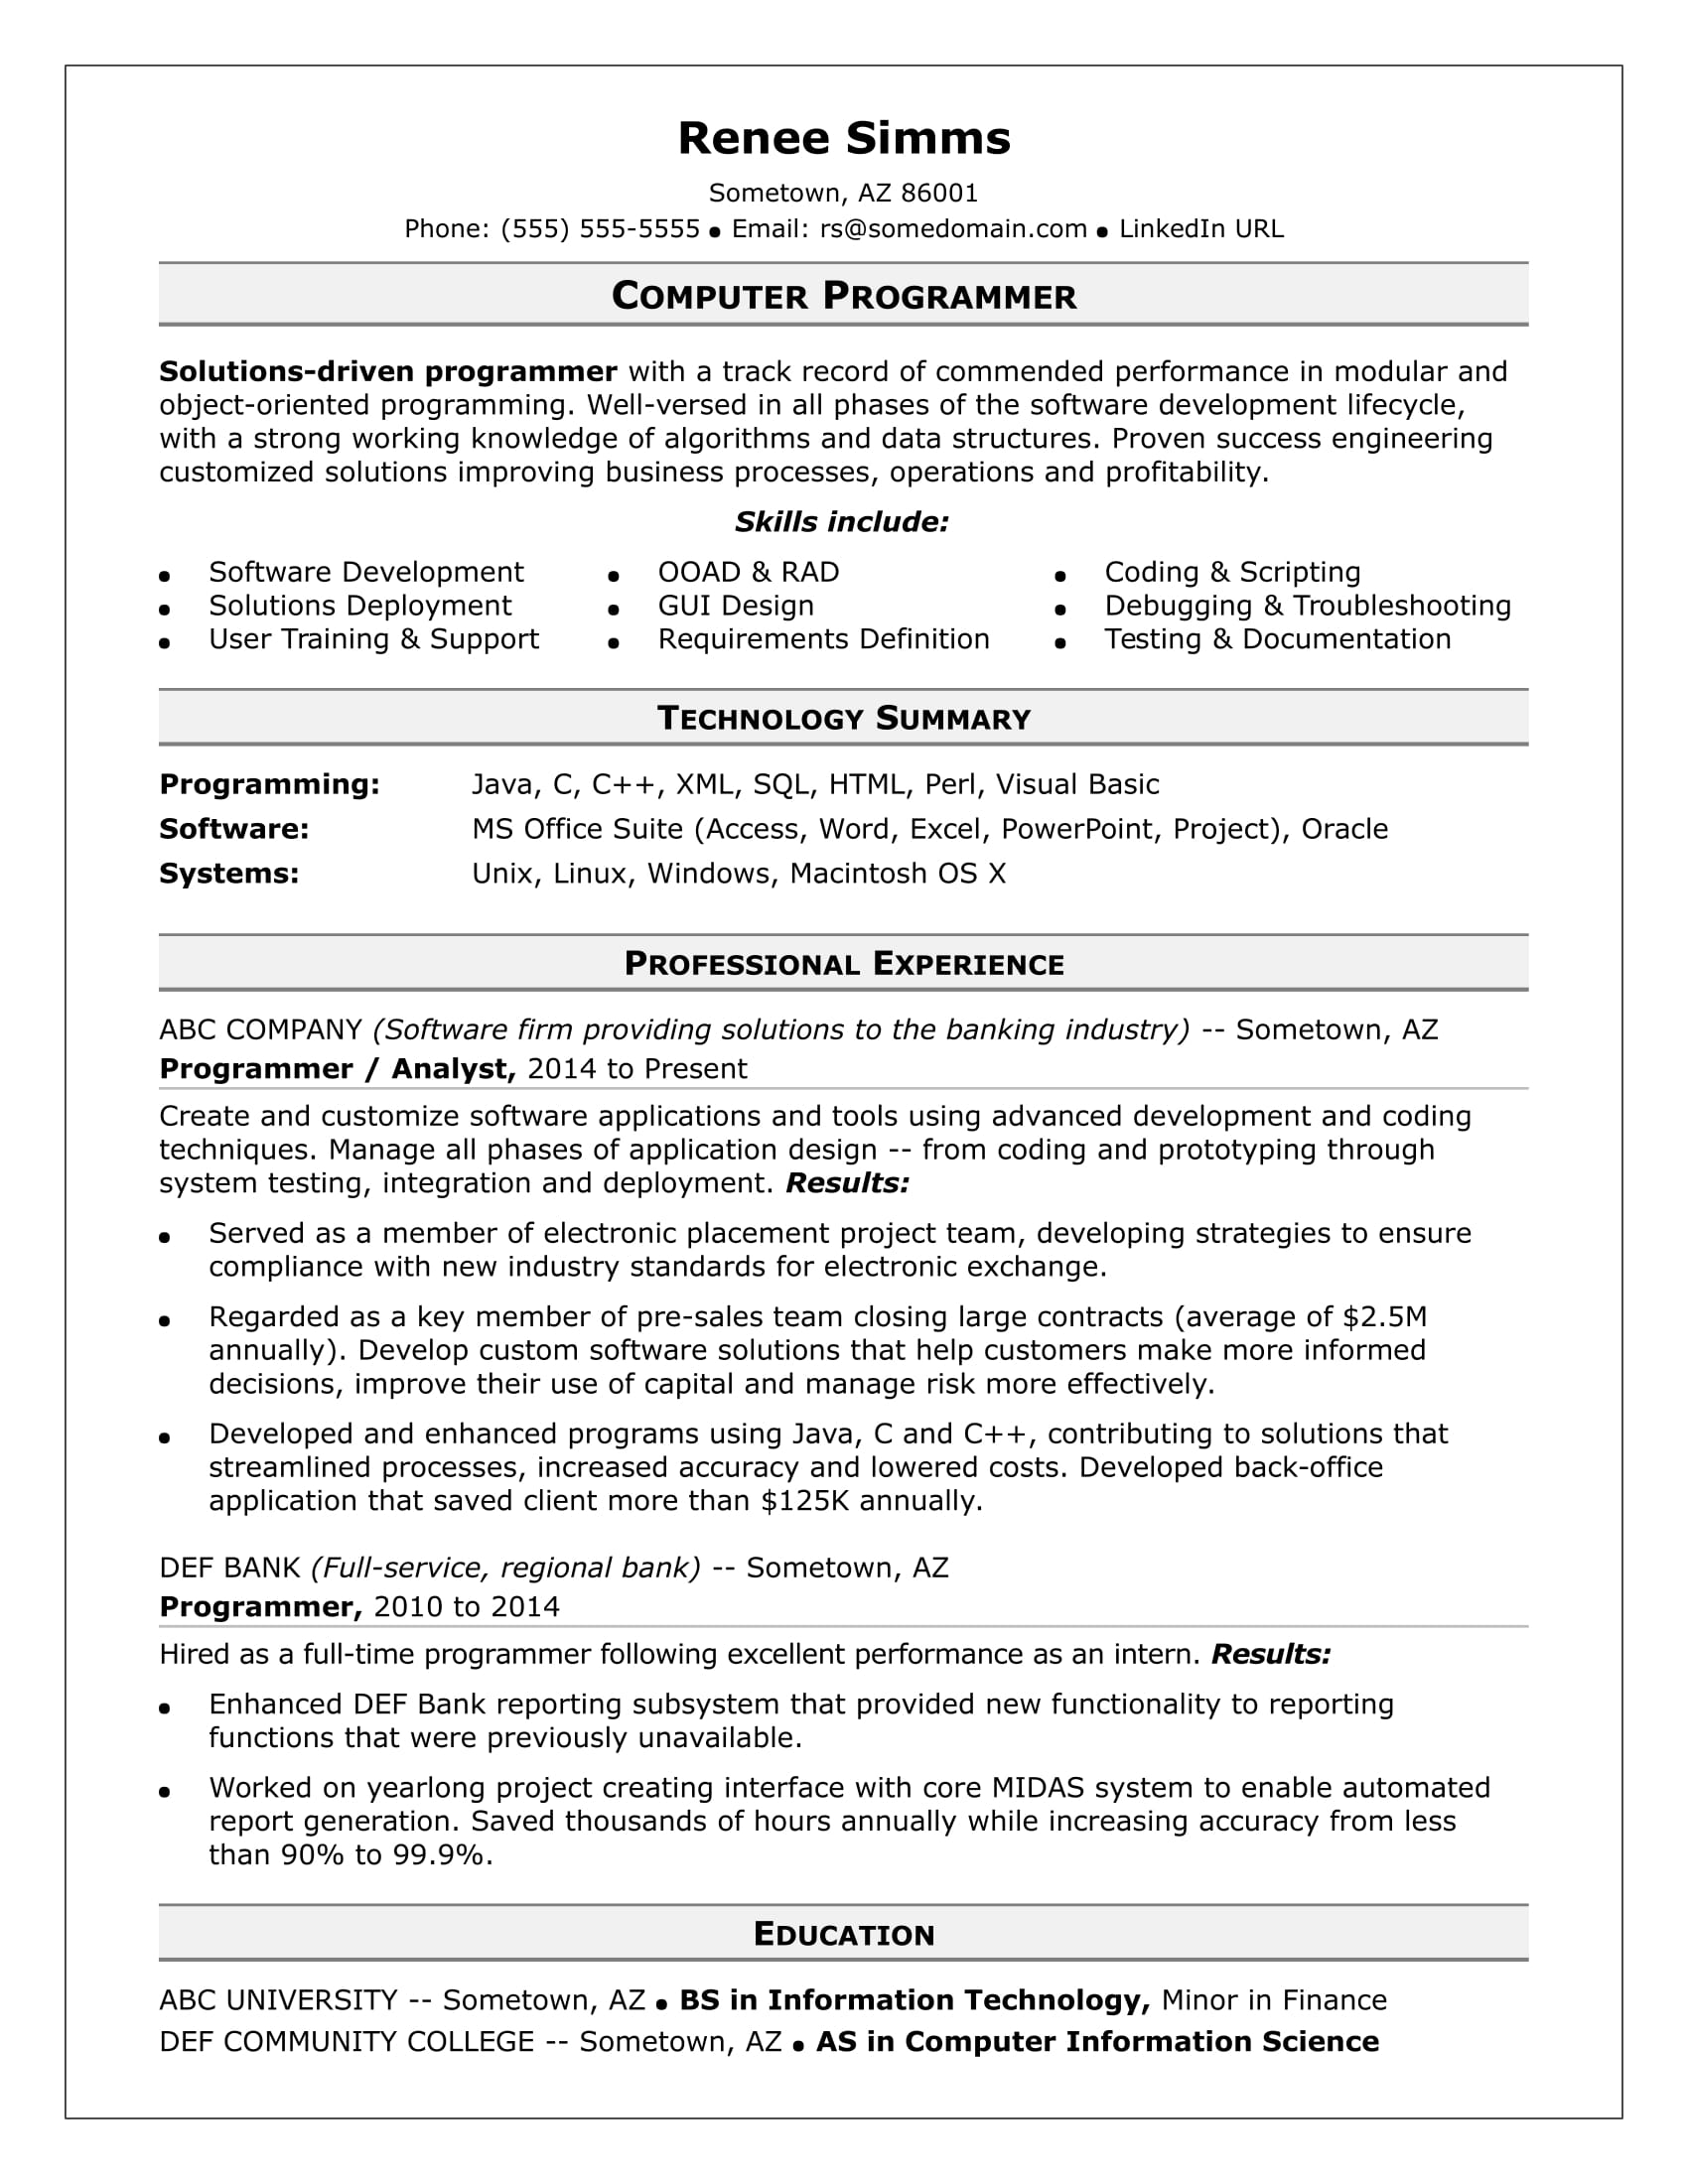 sample resume for a midlevel computer programmer monster com